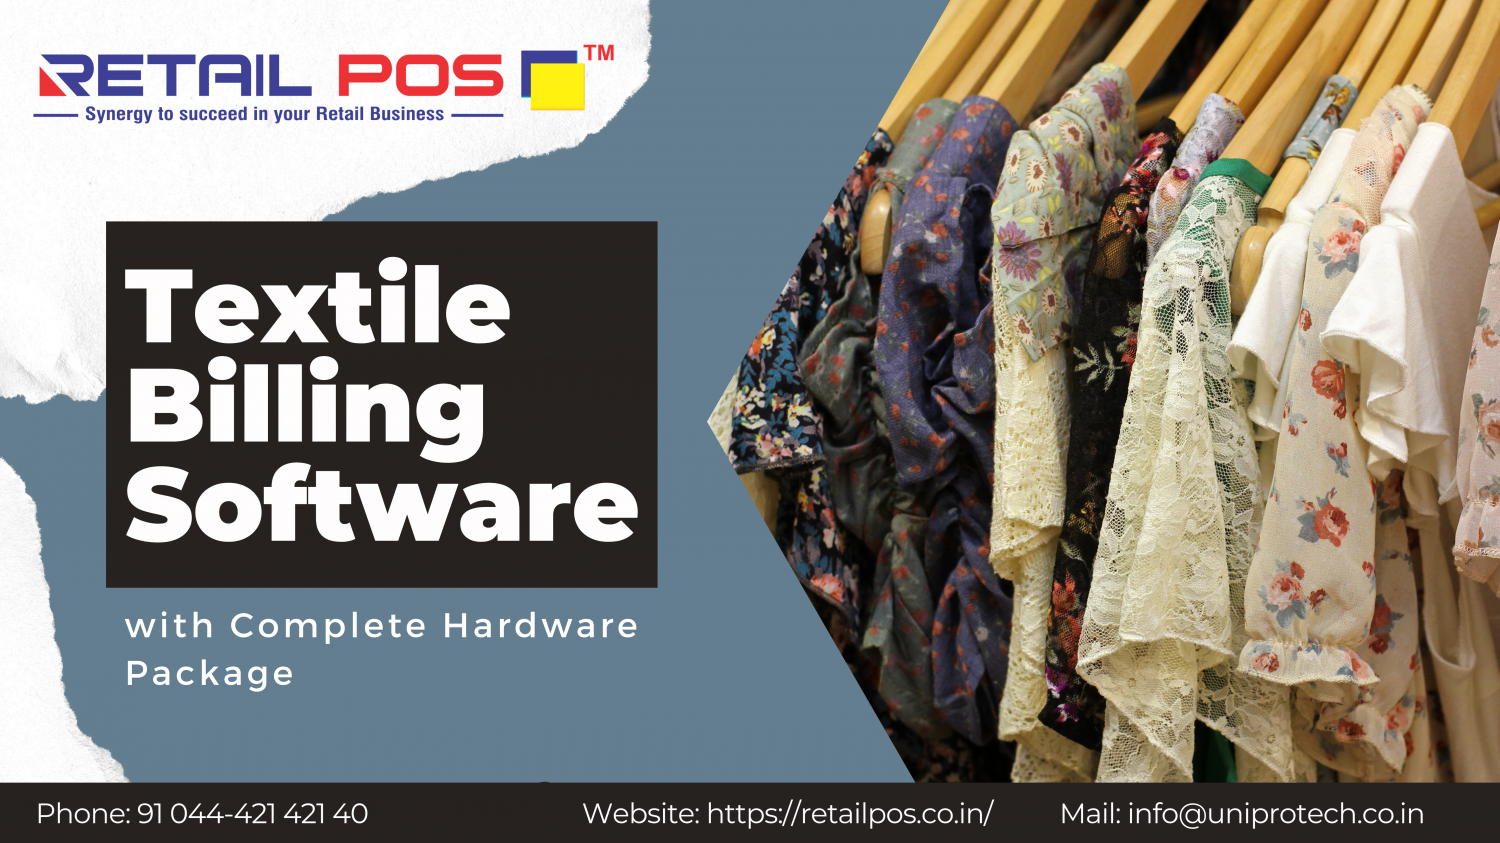 GST ready textile billing software to streamline your business operations Infographic